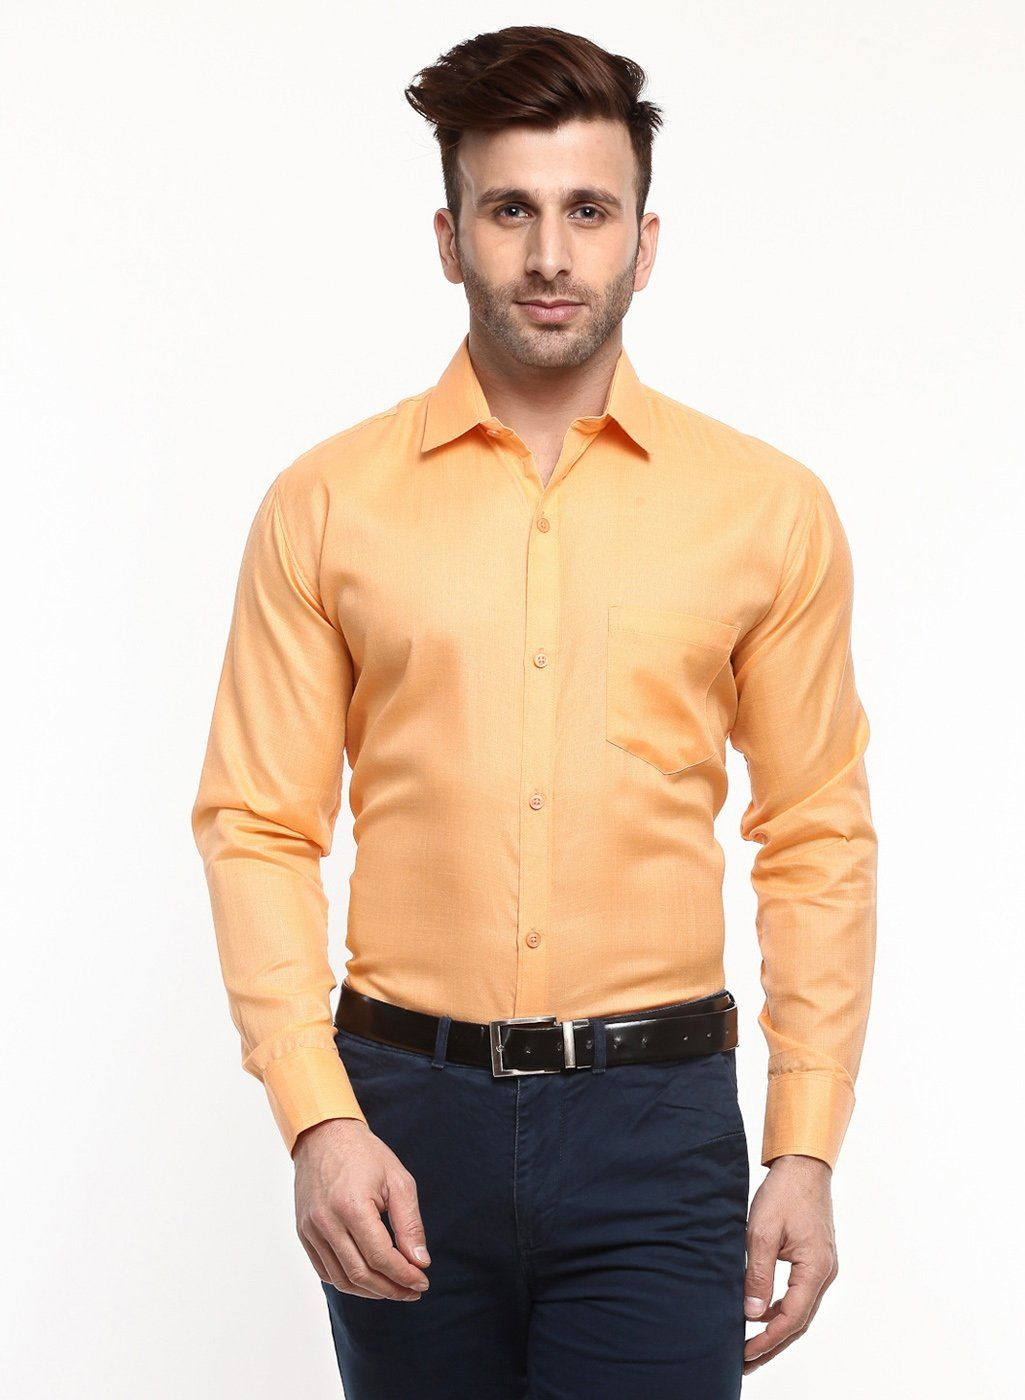 2a93065a9 Buy Hangup formal mens solid shirts Light Orange color Online at Low prices  in India on